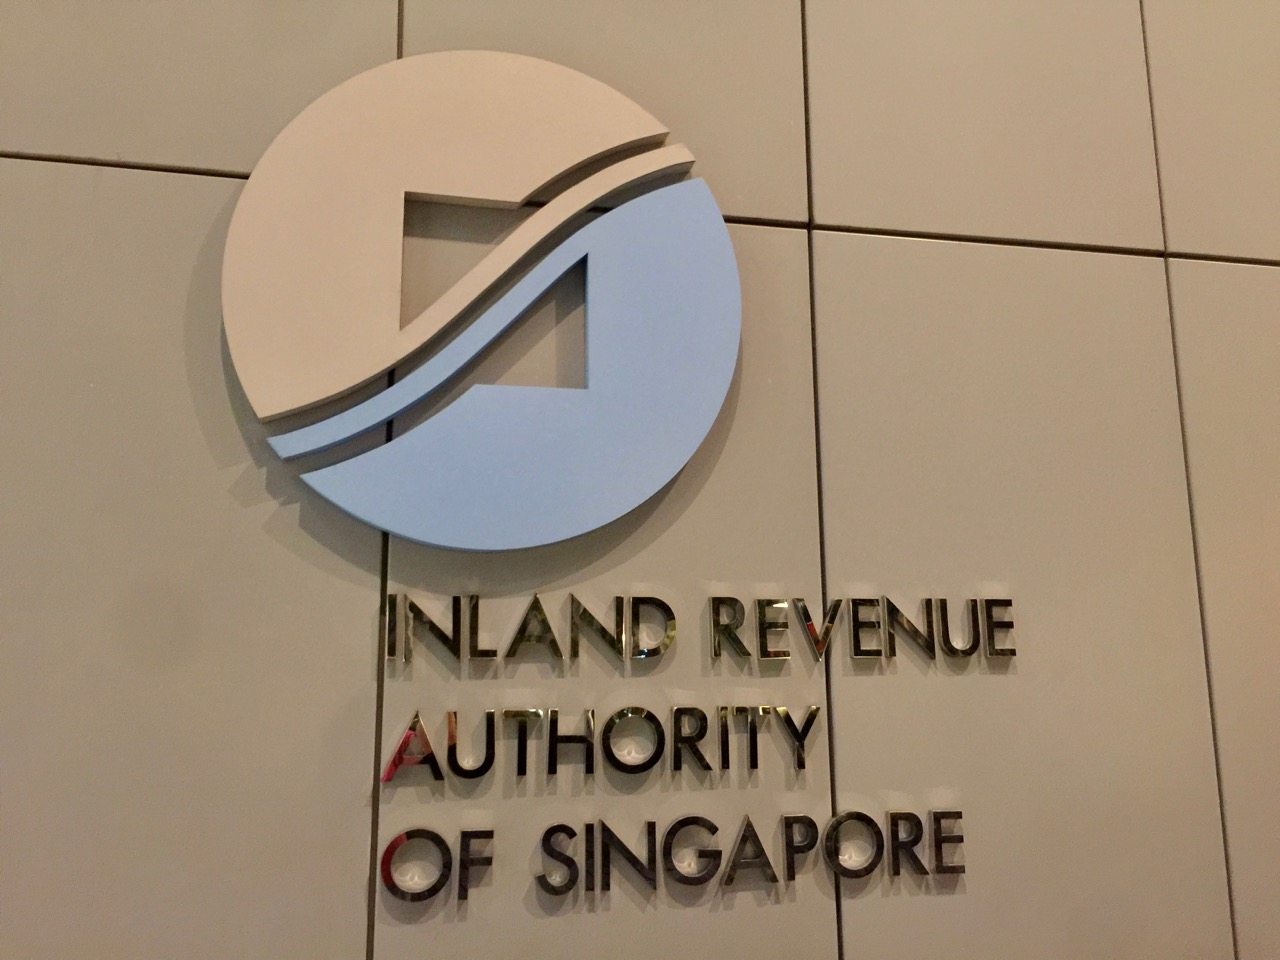 Singapore sets indicative margin for related party loan for 2021